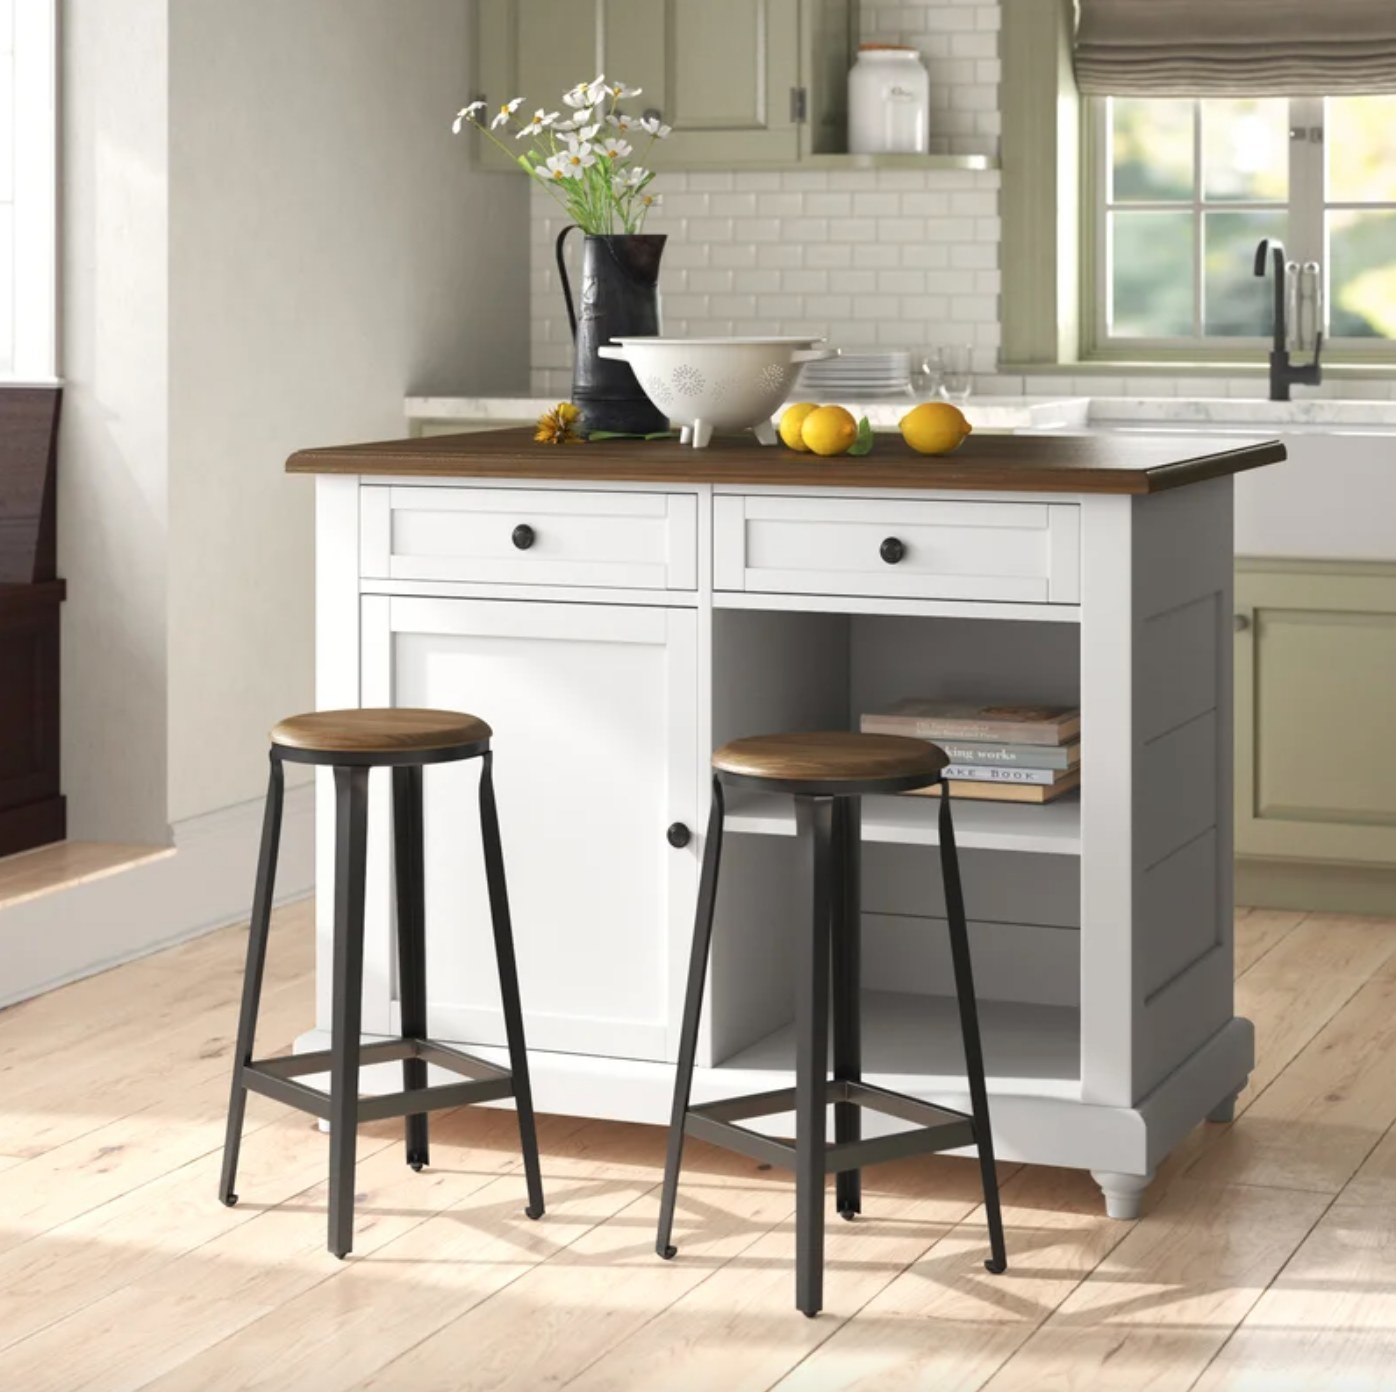 The kitchen island with a manufactured wood top in white